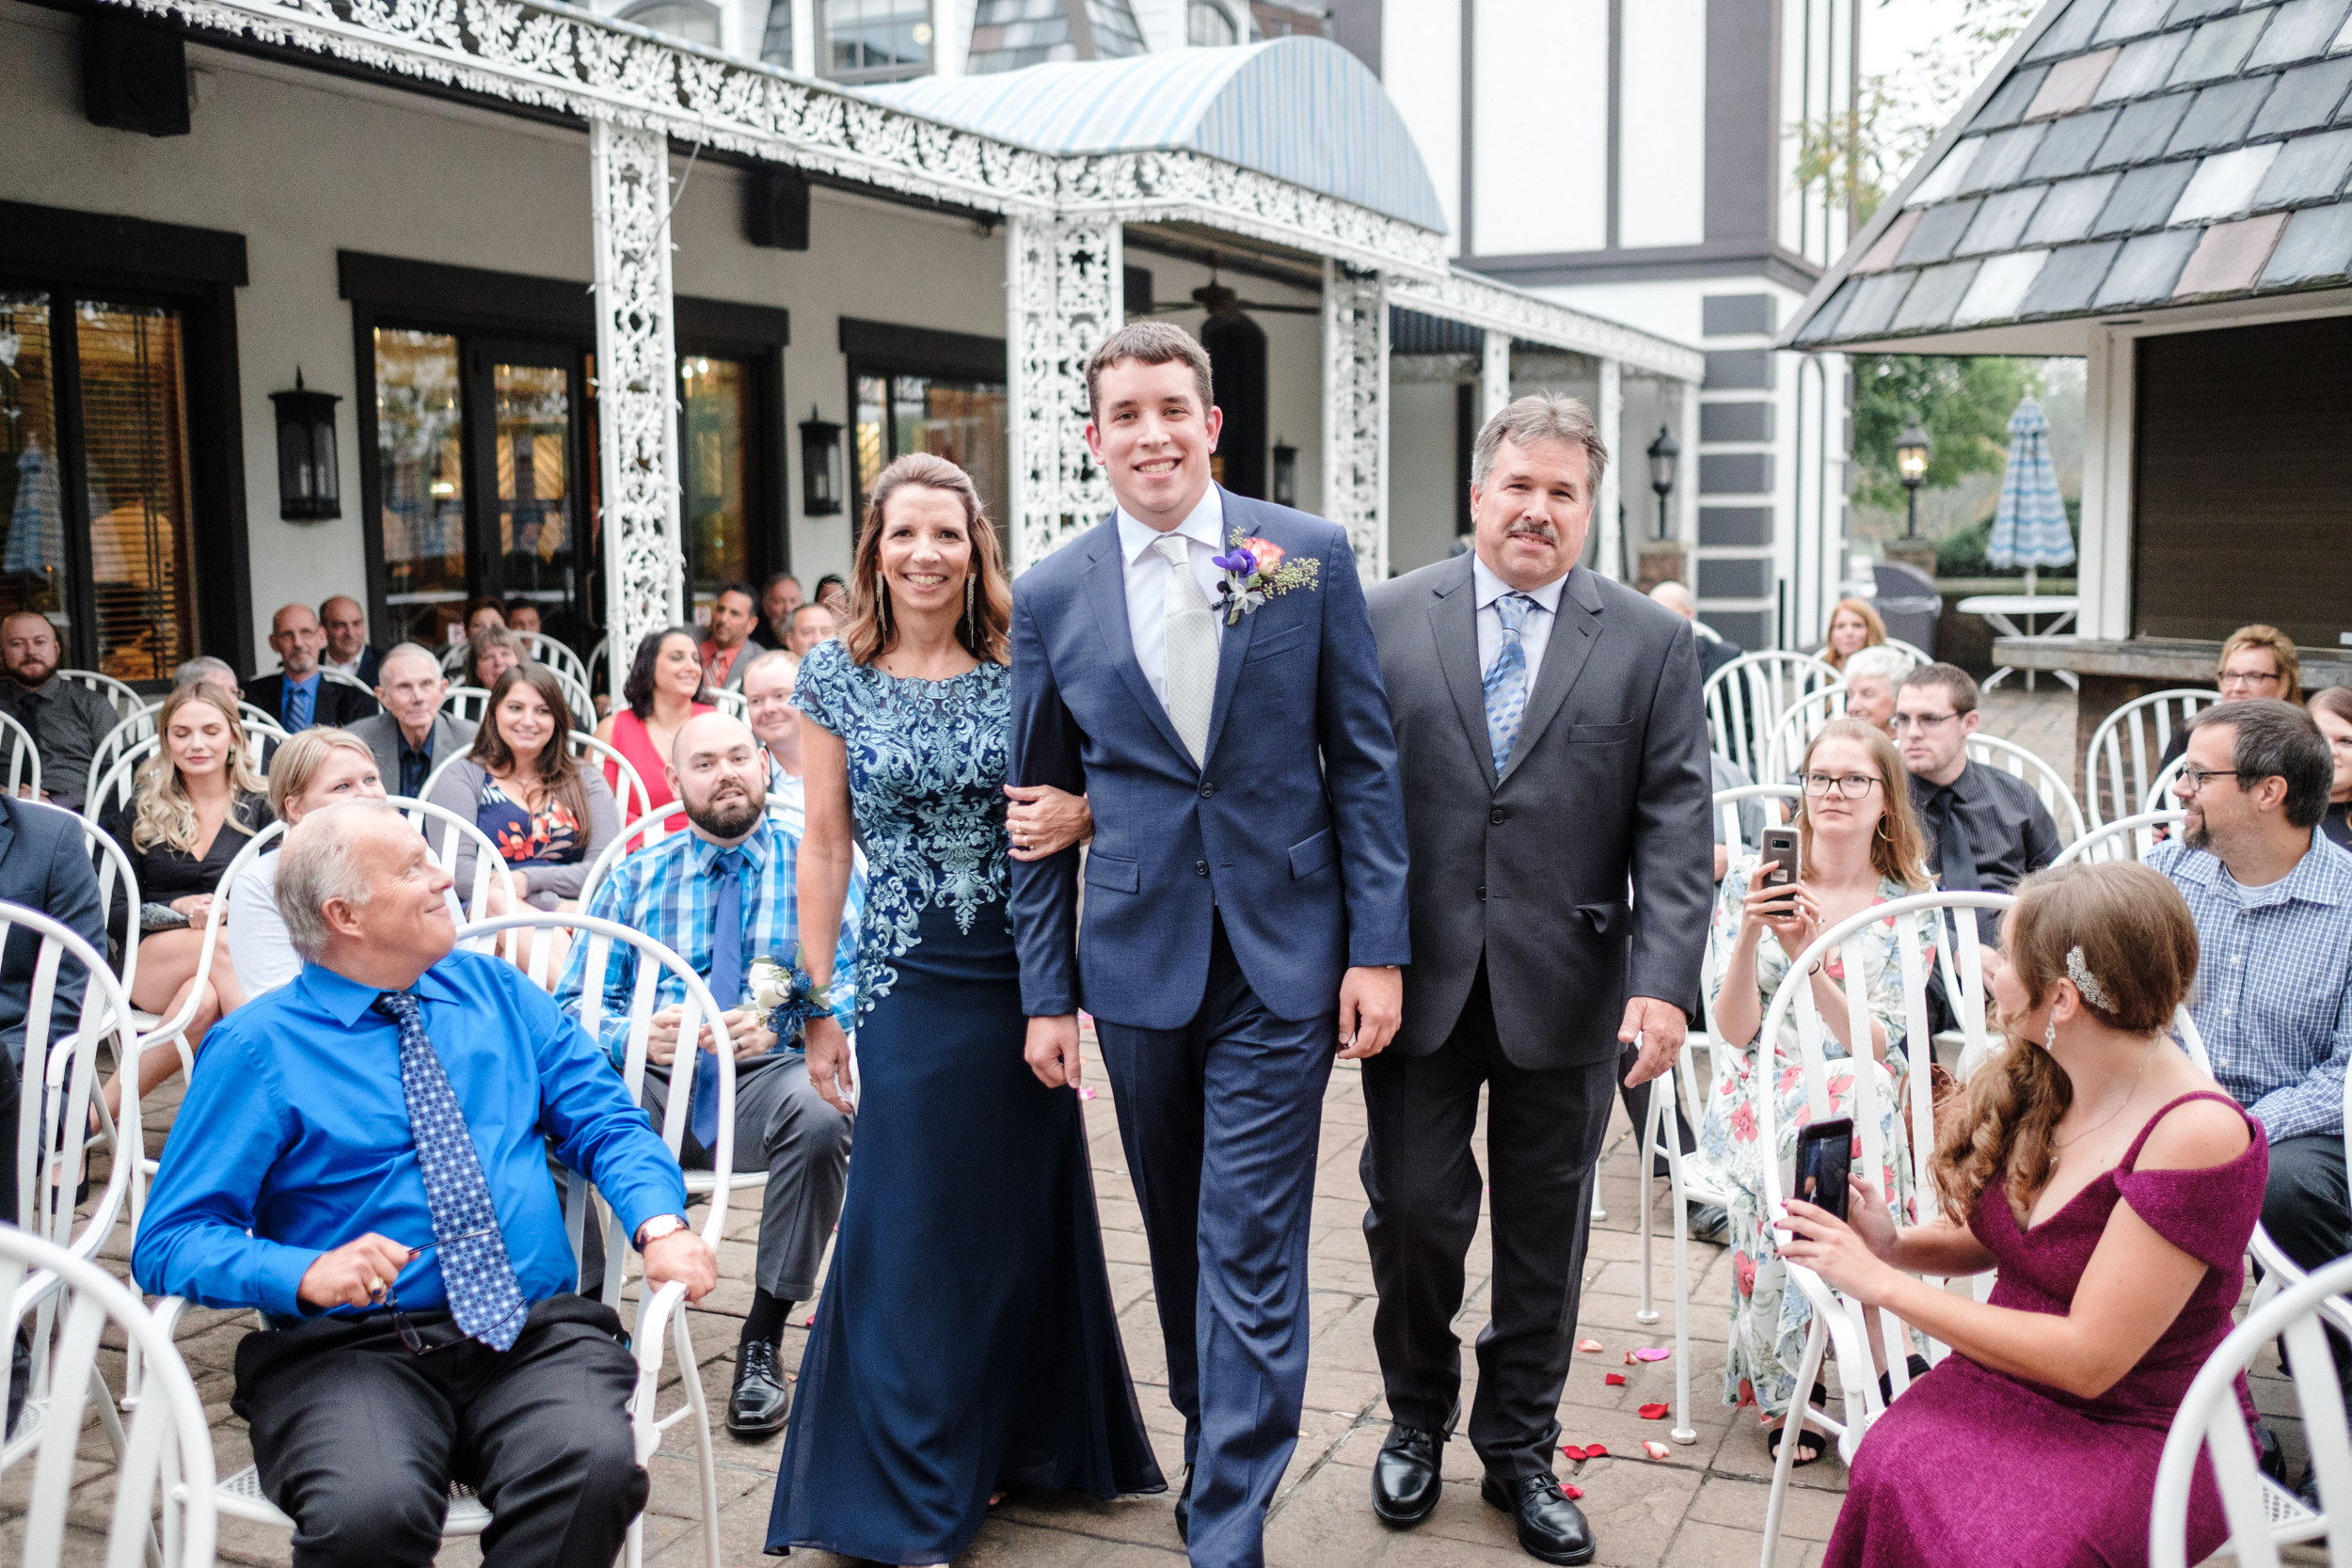 Groom in blue suit escorting parents down the aisle before outdoor fall wedding